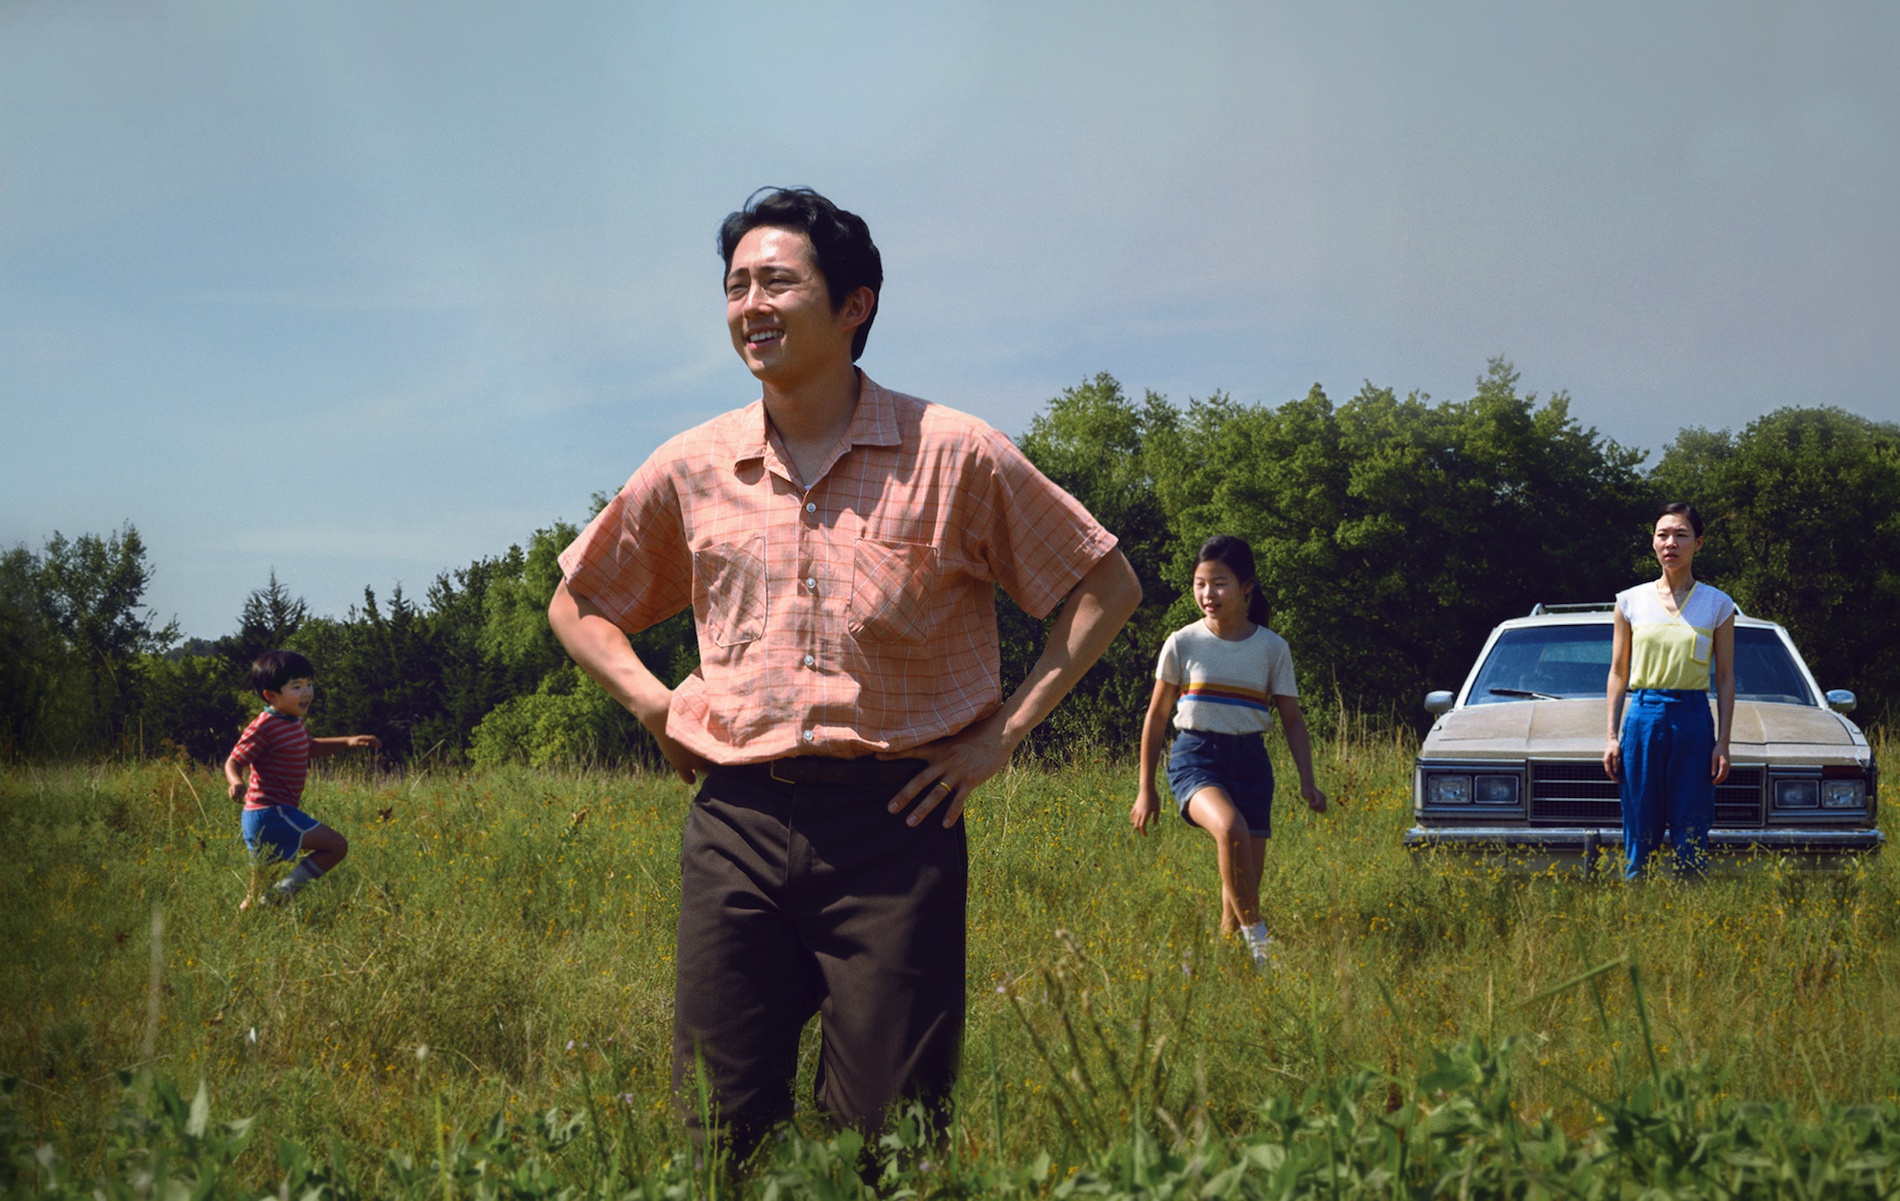 'Minari' Is A Touching Family Drama That Puts the Concept of American Promise Against What Fulfillment Really Means